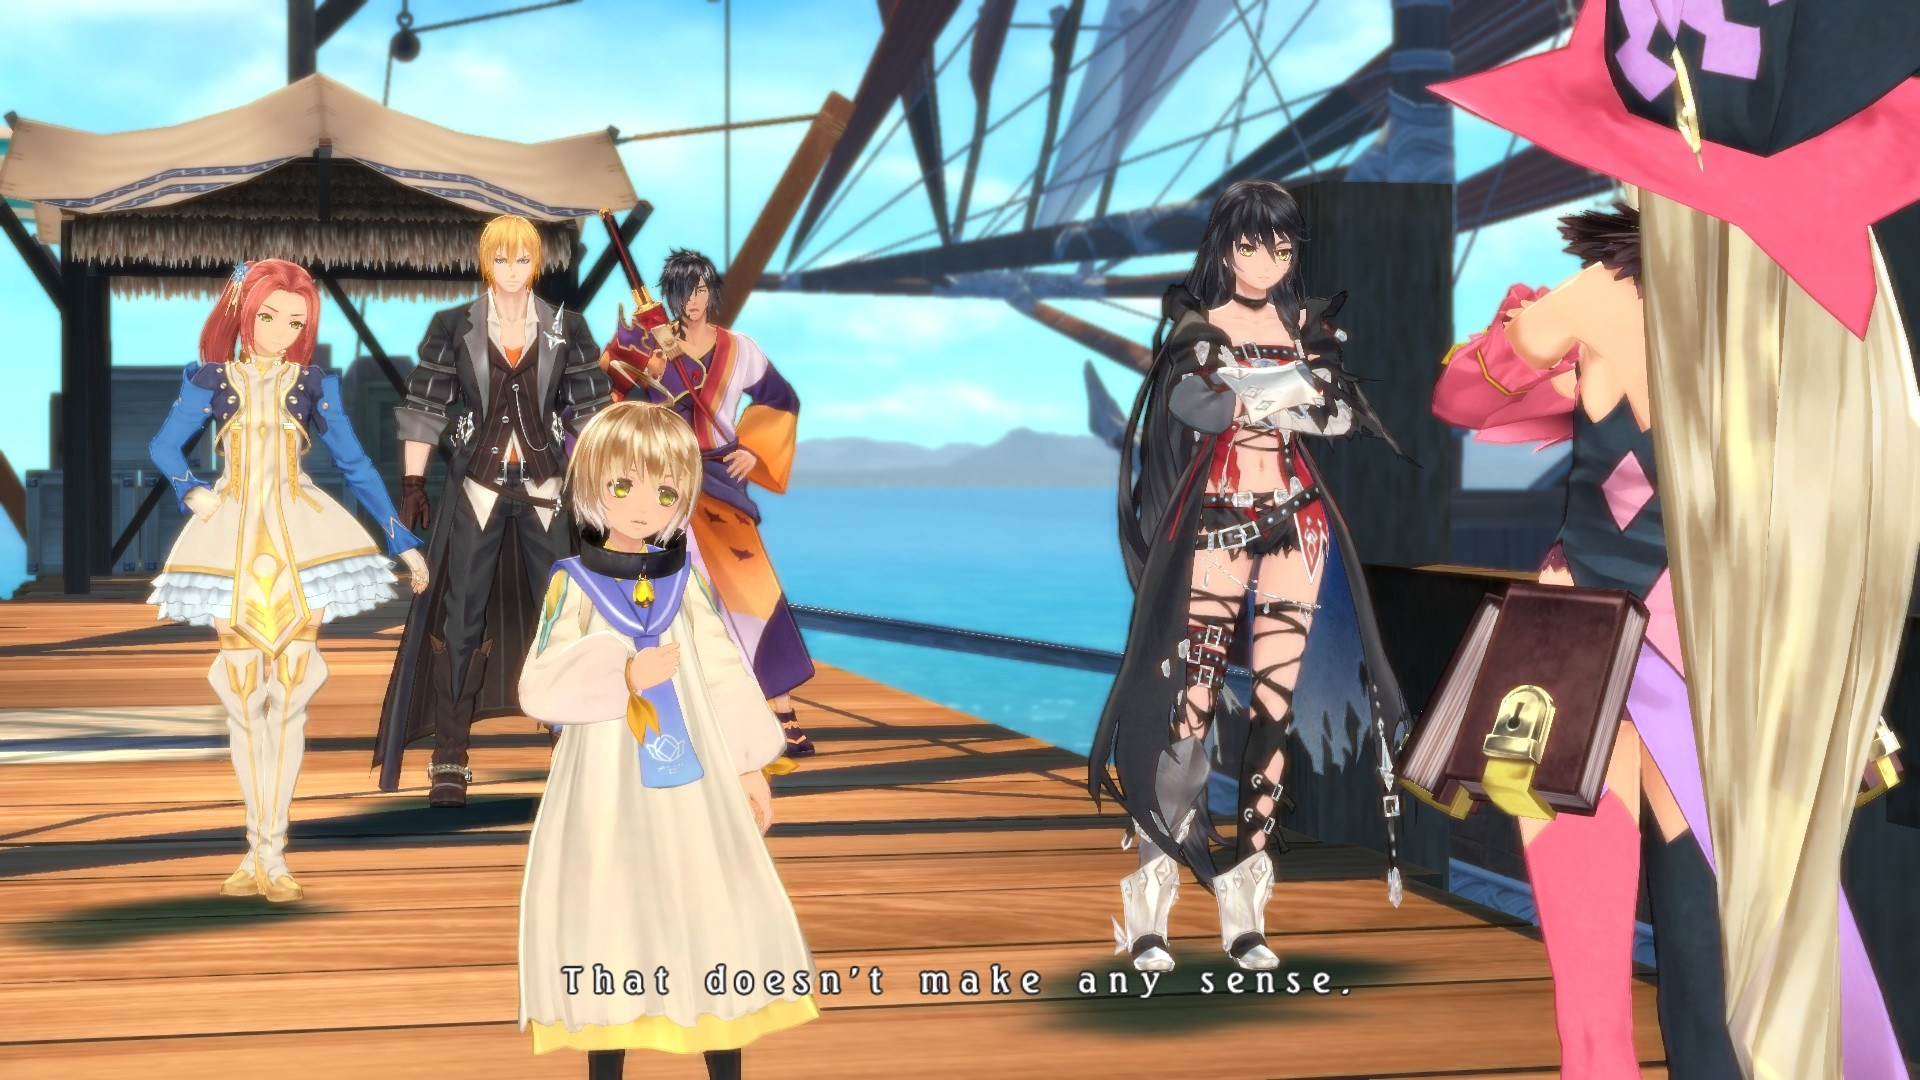 BUY Tales of Berseria Steam CD KEY